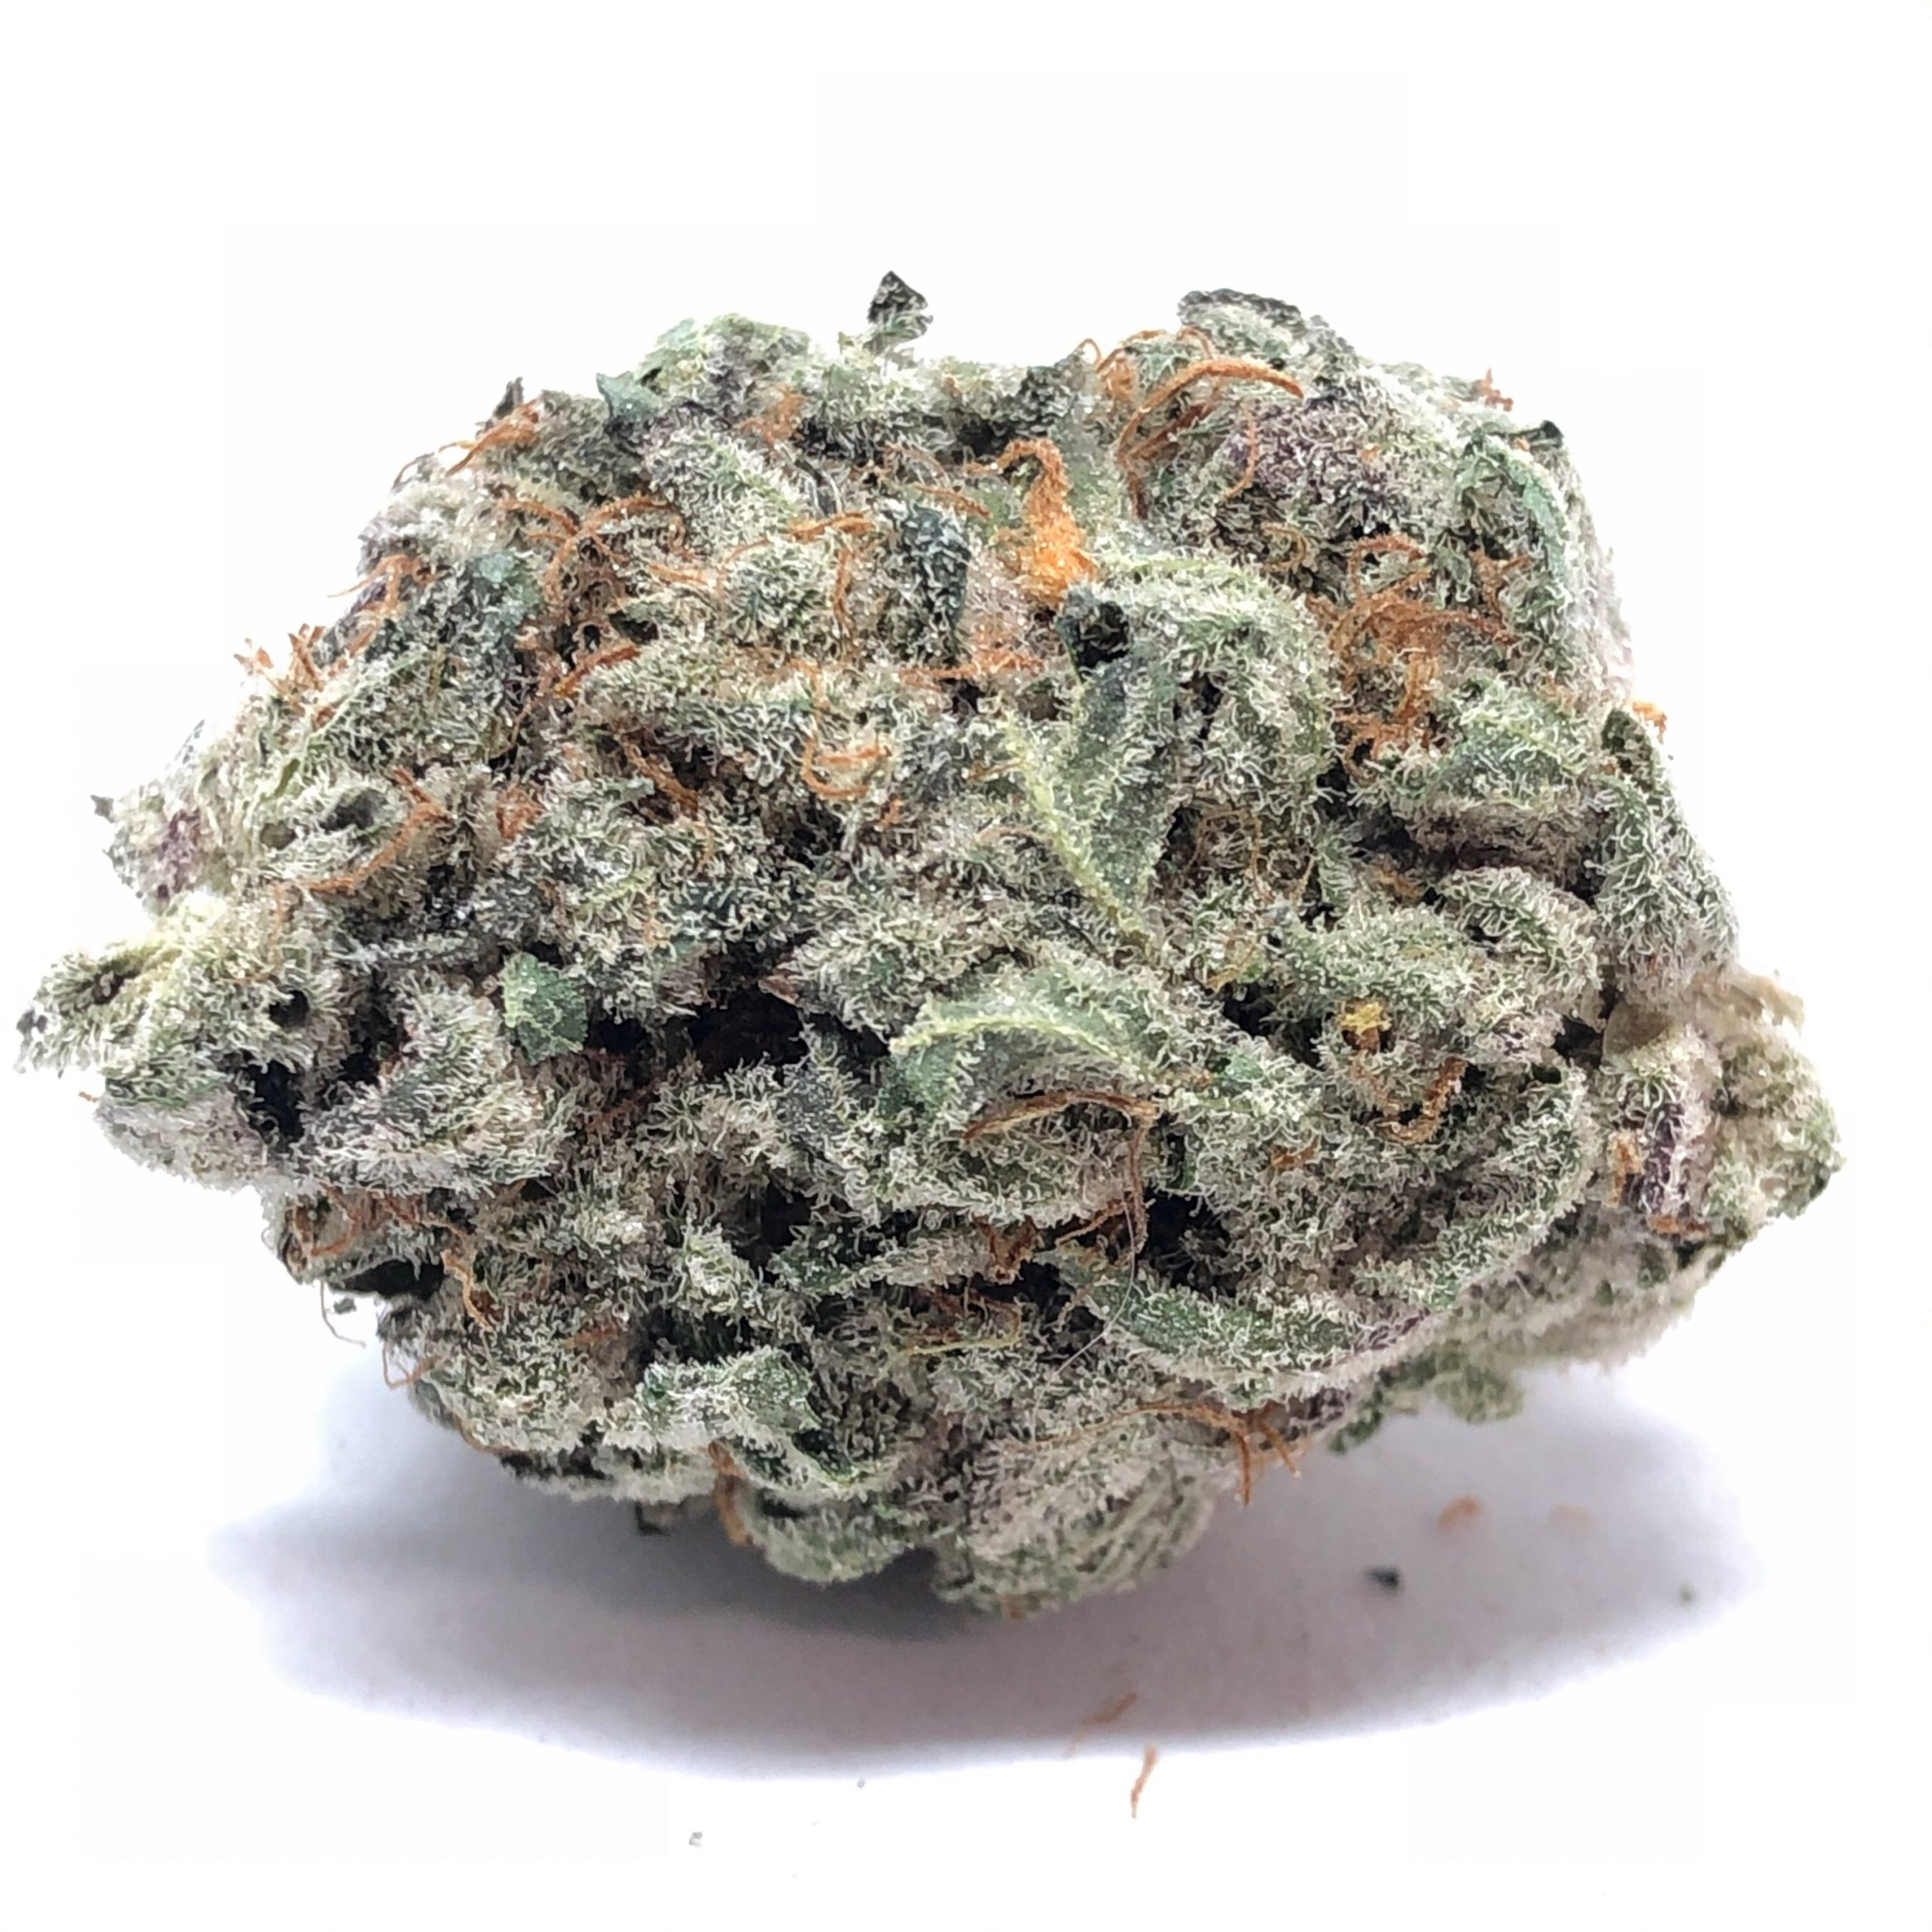 Vanilla Kush by Ounce Buddy - Image © 2021 Ounce Buddy. All Rights Reserved.